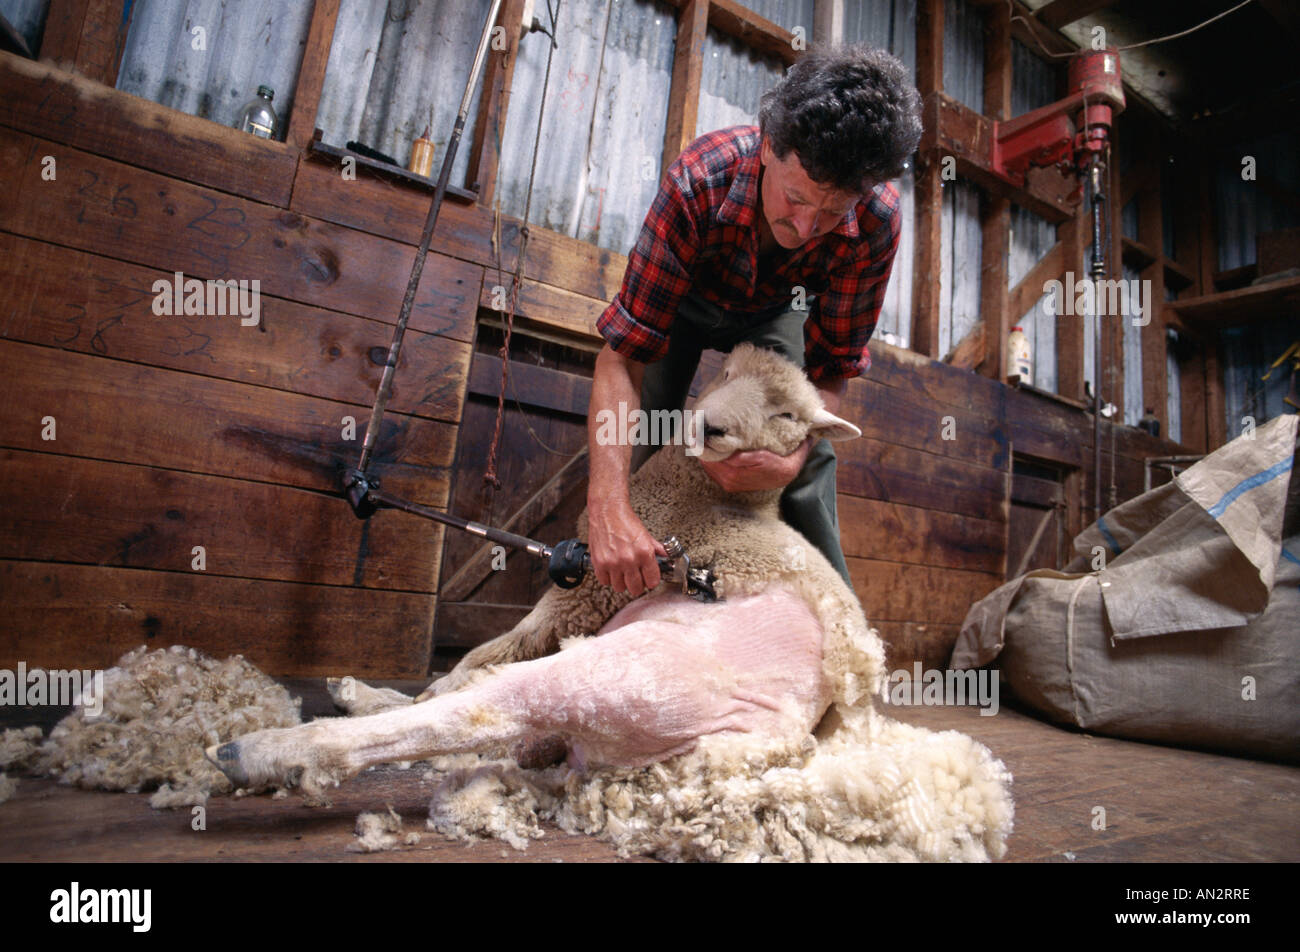 Farmer Sheep Shearing North Island New Zealand Stock Photo